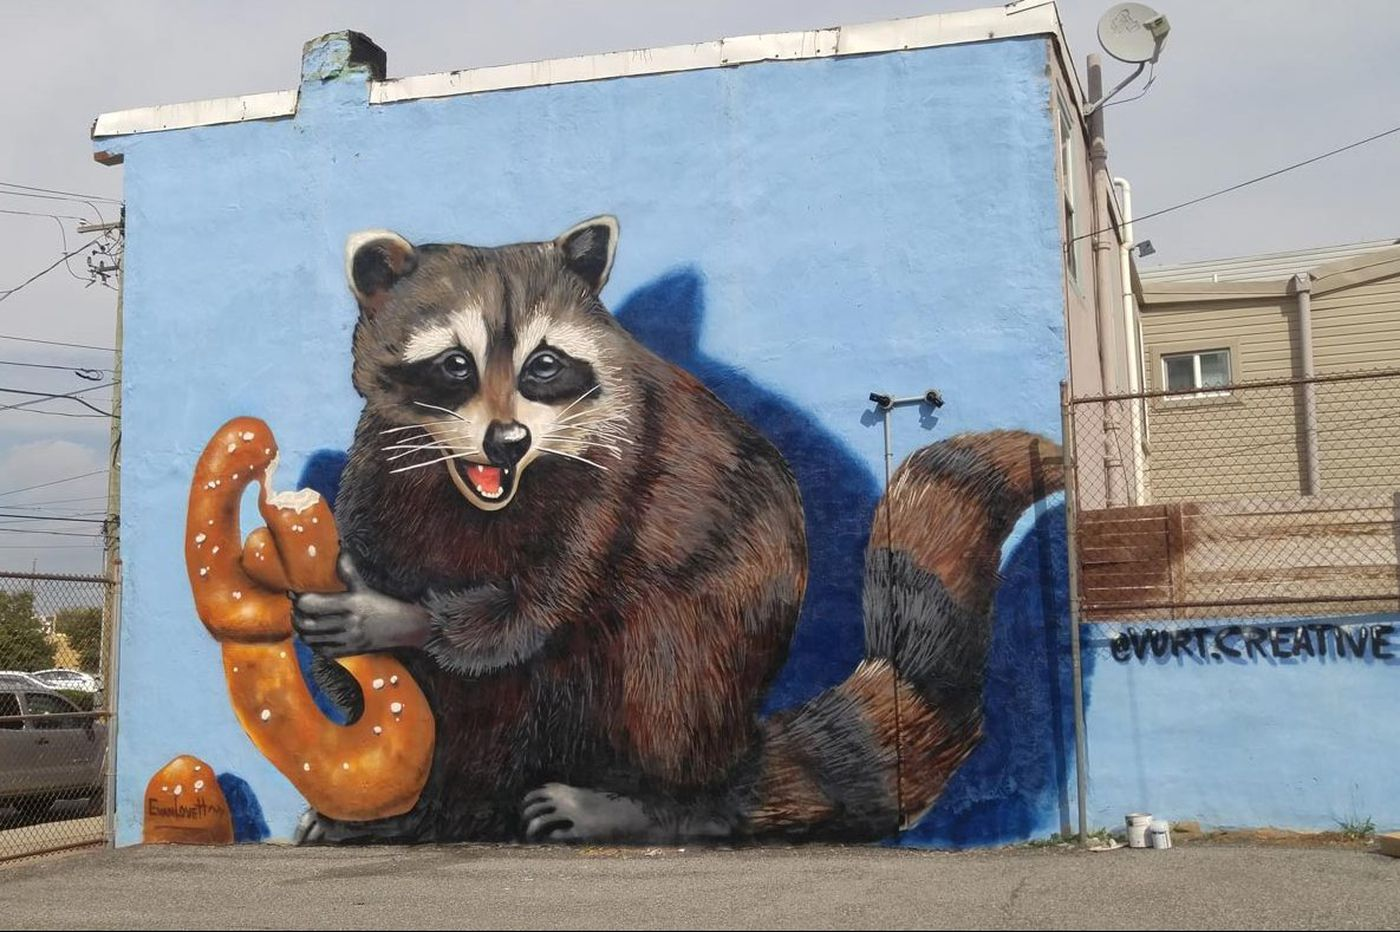 Philly's newest mural: A pretzel-eating raccoon